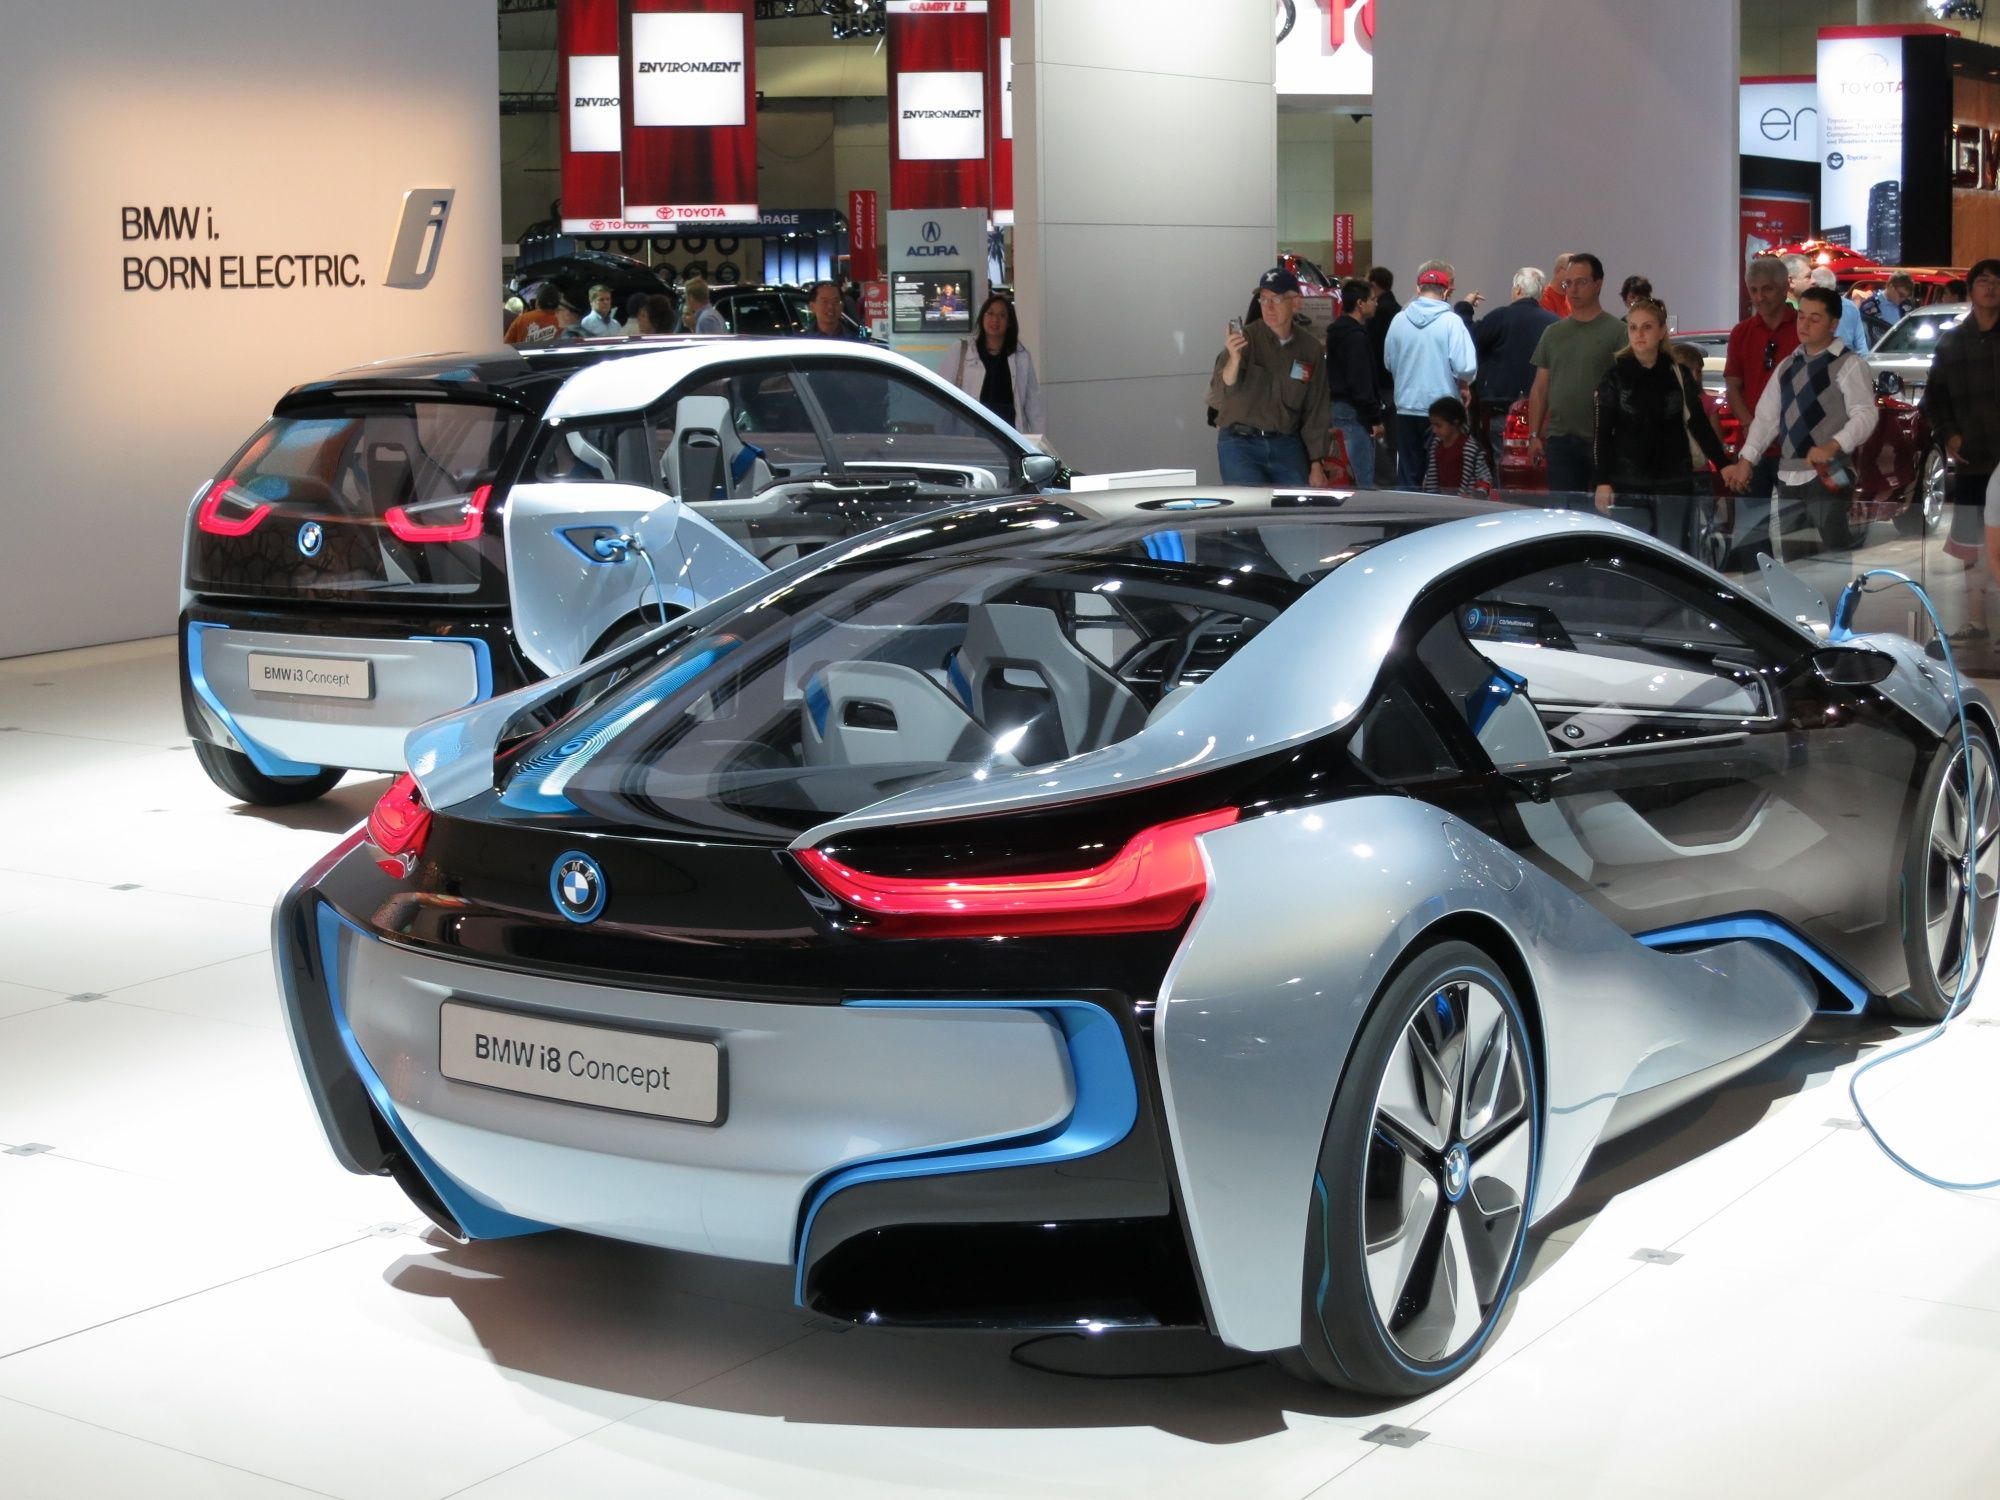 Electric Cars Two New Bmw Electric Cars With Images Electric